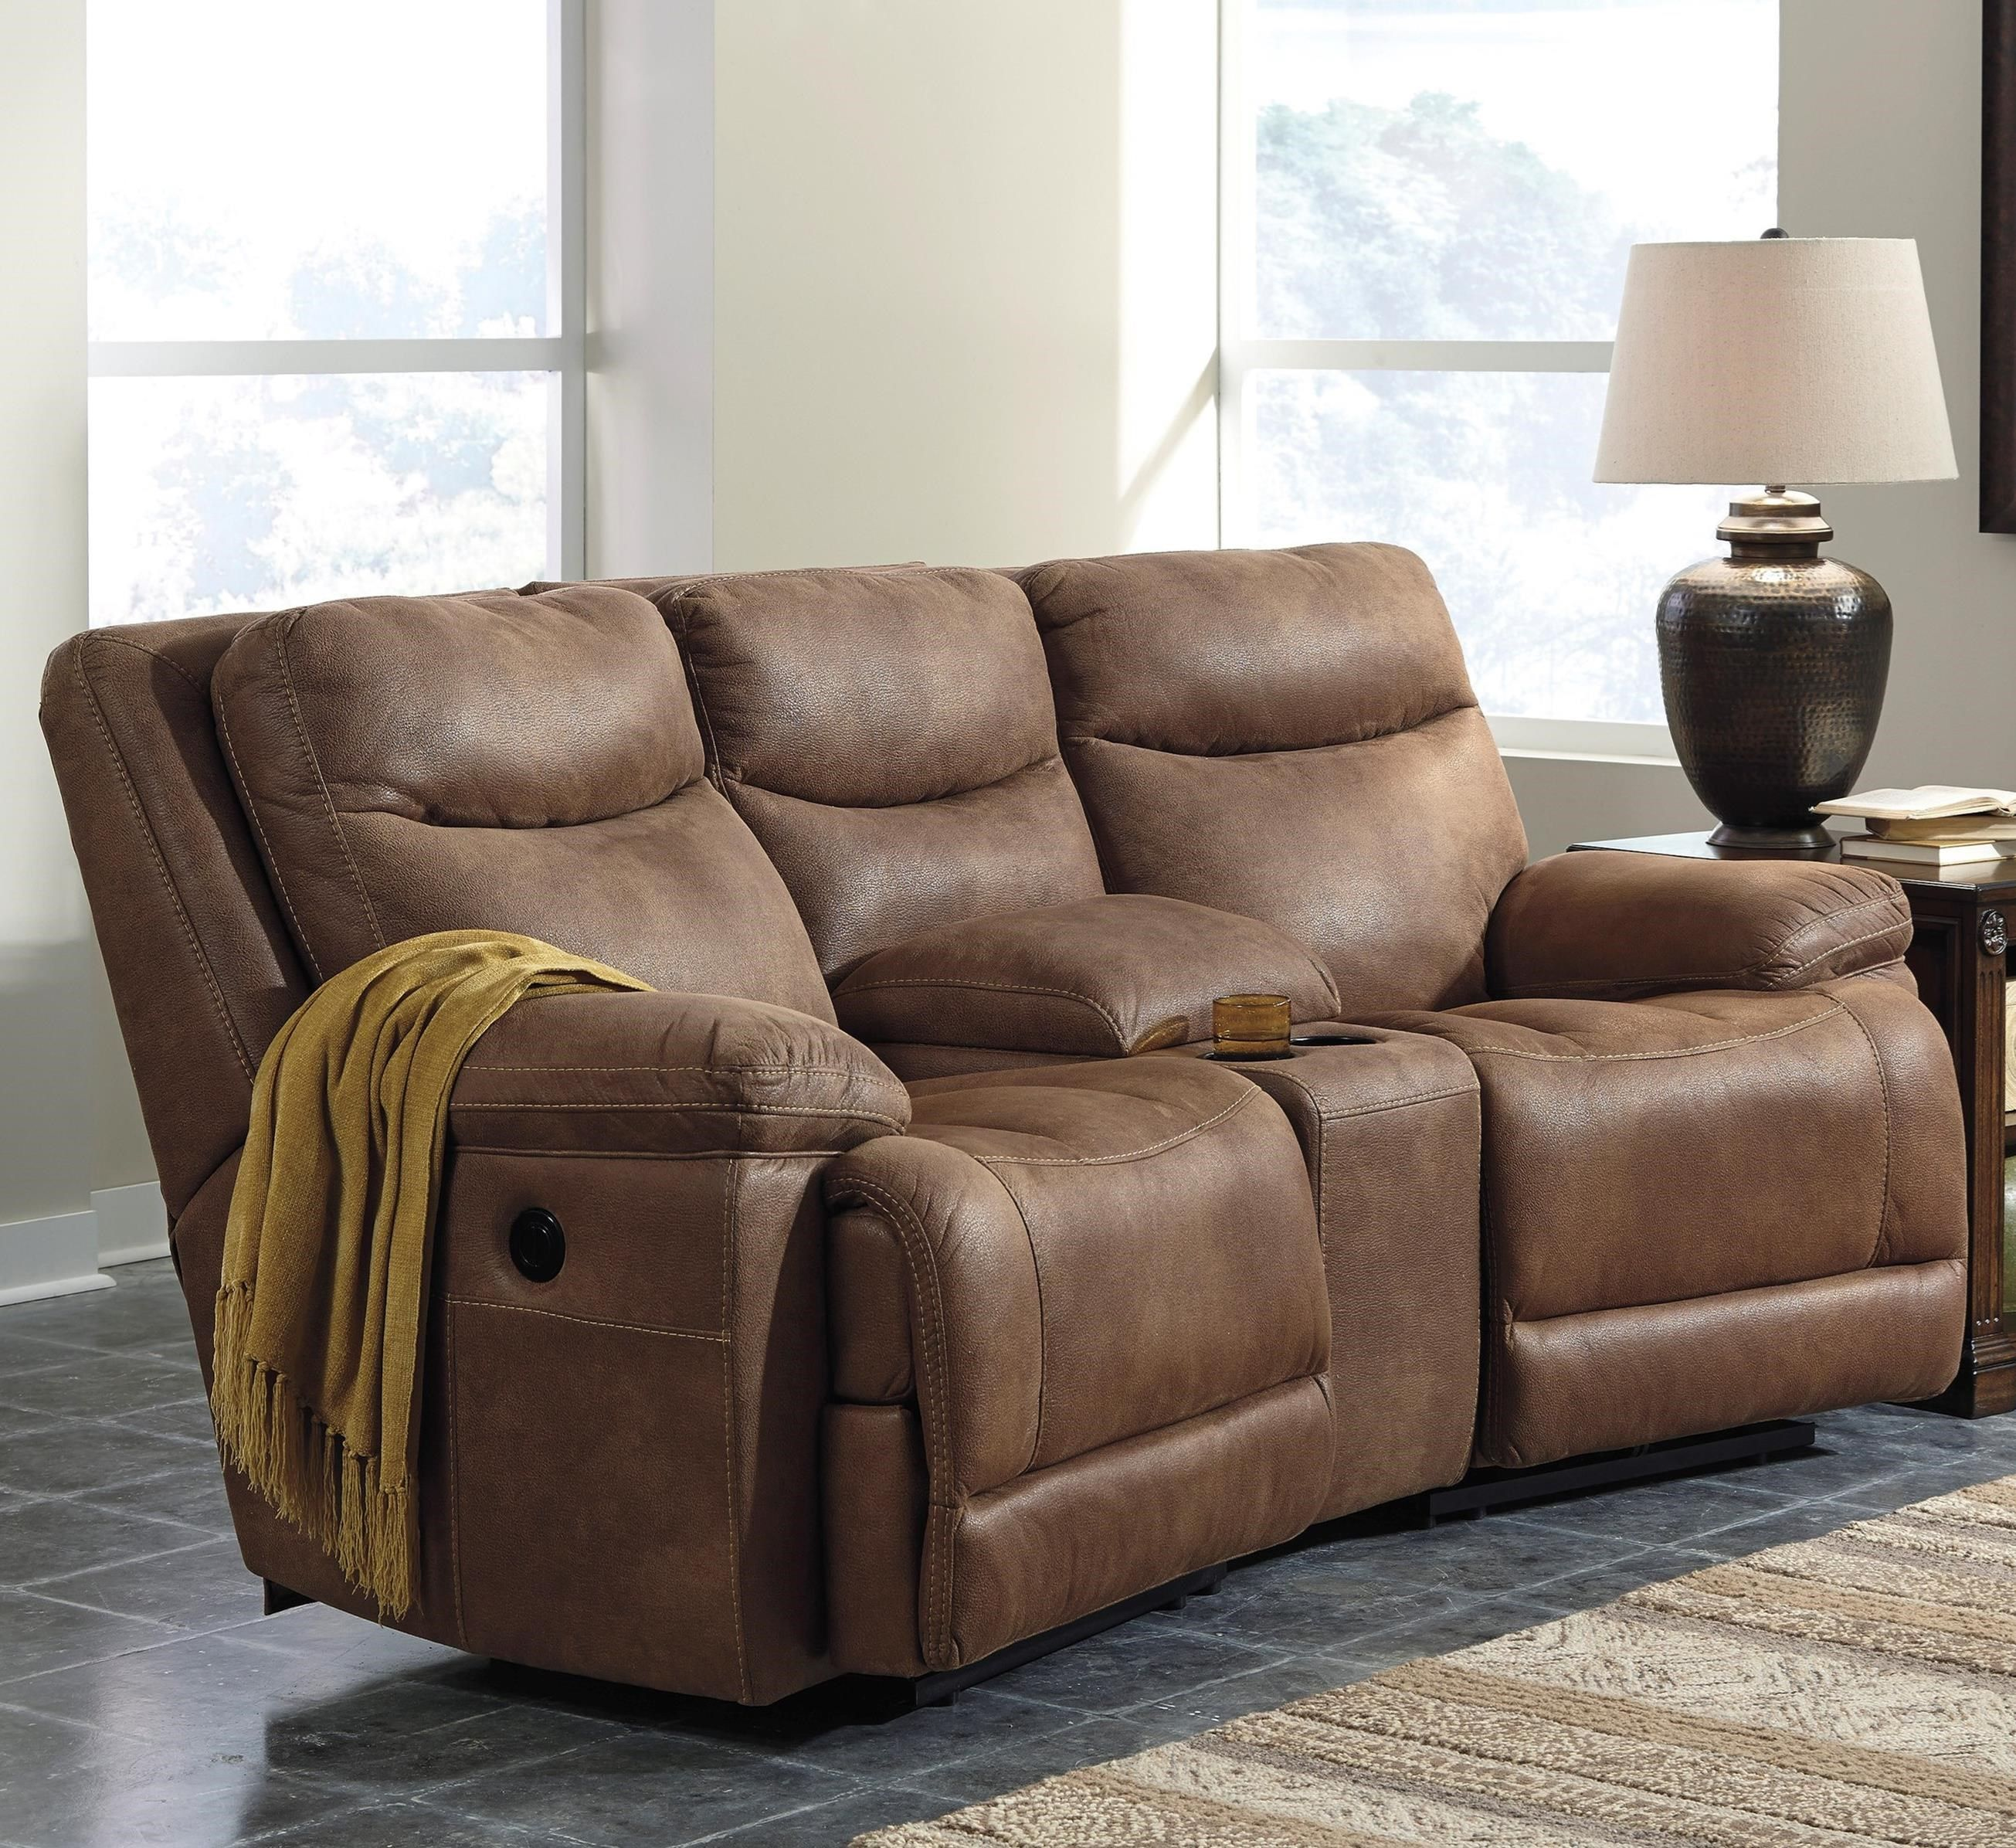 Ashley Furniture Missoula: Valto Power Reclining Sofa With Angled Console By